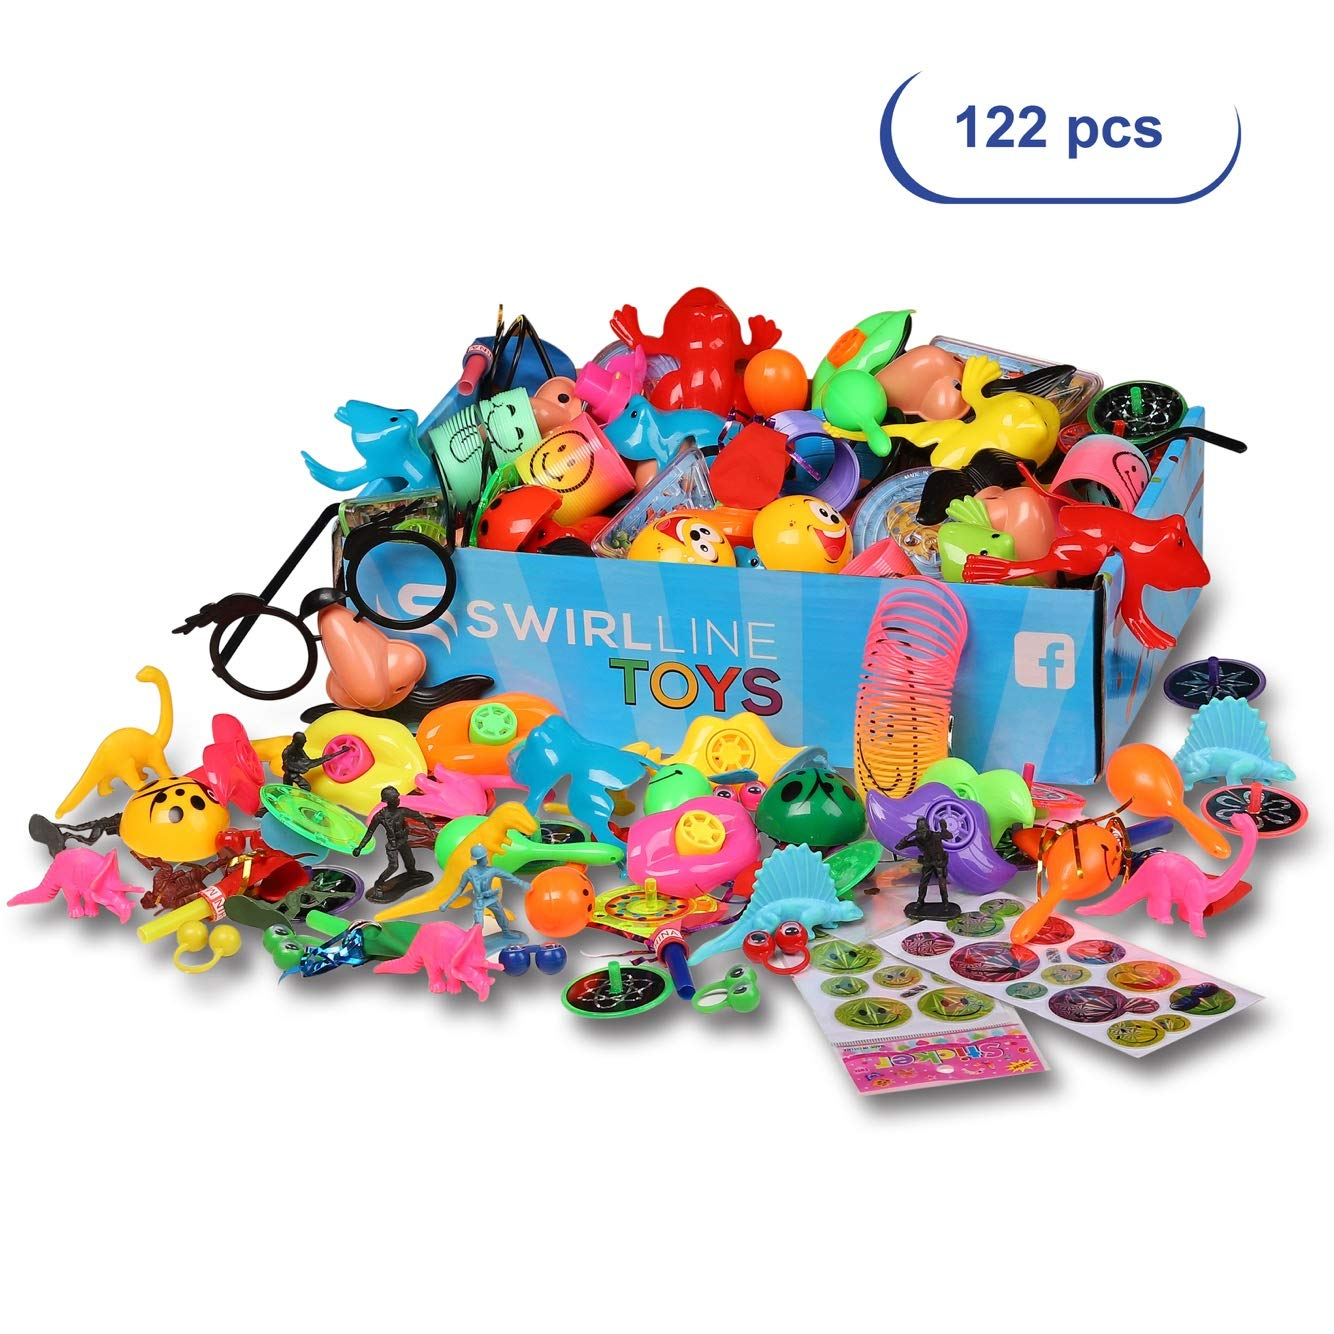 Party Favors Kids - Carnival Prizes Toys Bulk - 122PCS Pinata Filler Toy Assortment - Boys Girls Birthday Box - Classroom Treasure Chest - Games Pack by SWIRLLINE (Image #1)